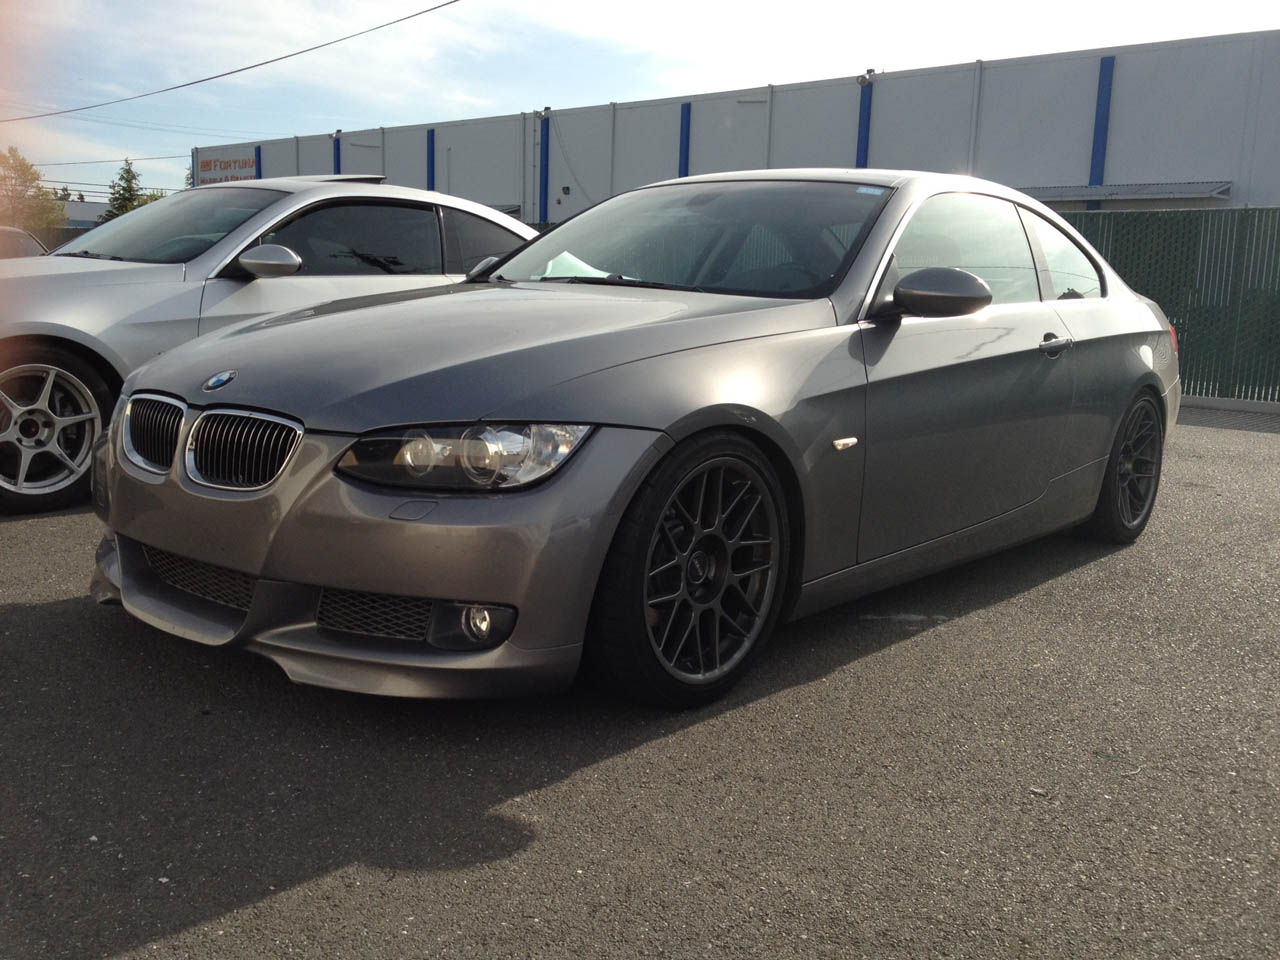 Space Grey 2007 BMW 335i Coupe VISHNU Procede